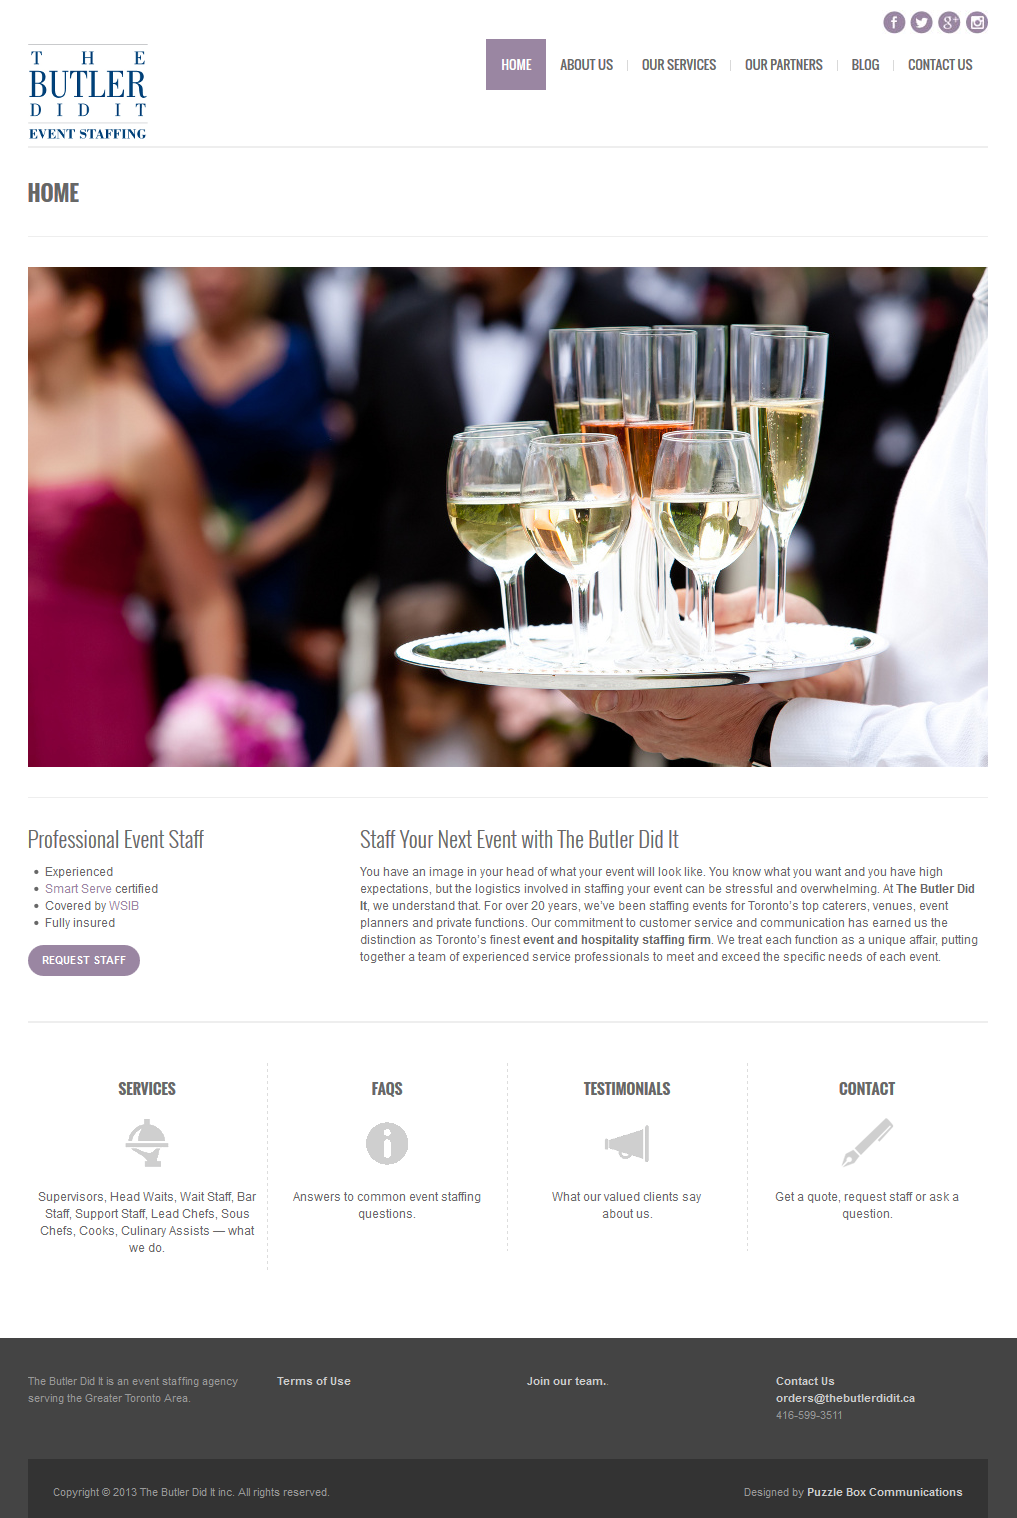 The Butler Did It, Web Design by www.puzzleboxcommunications.com